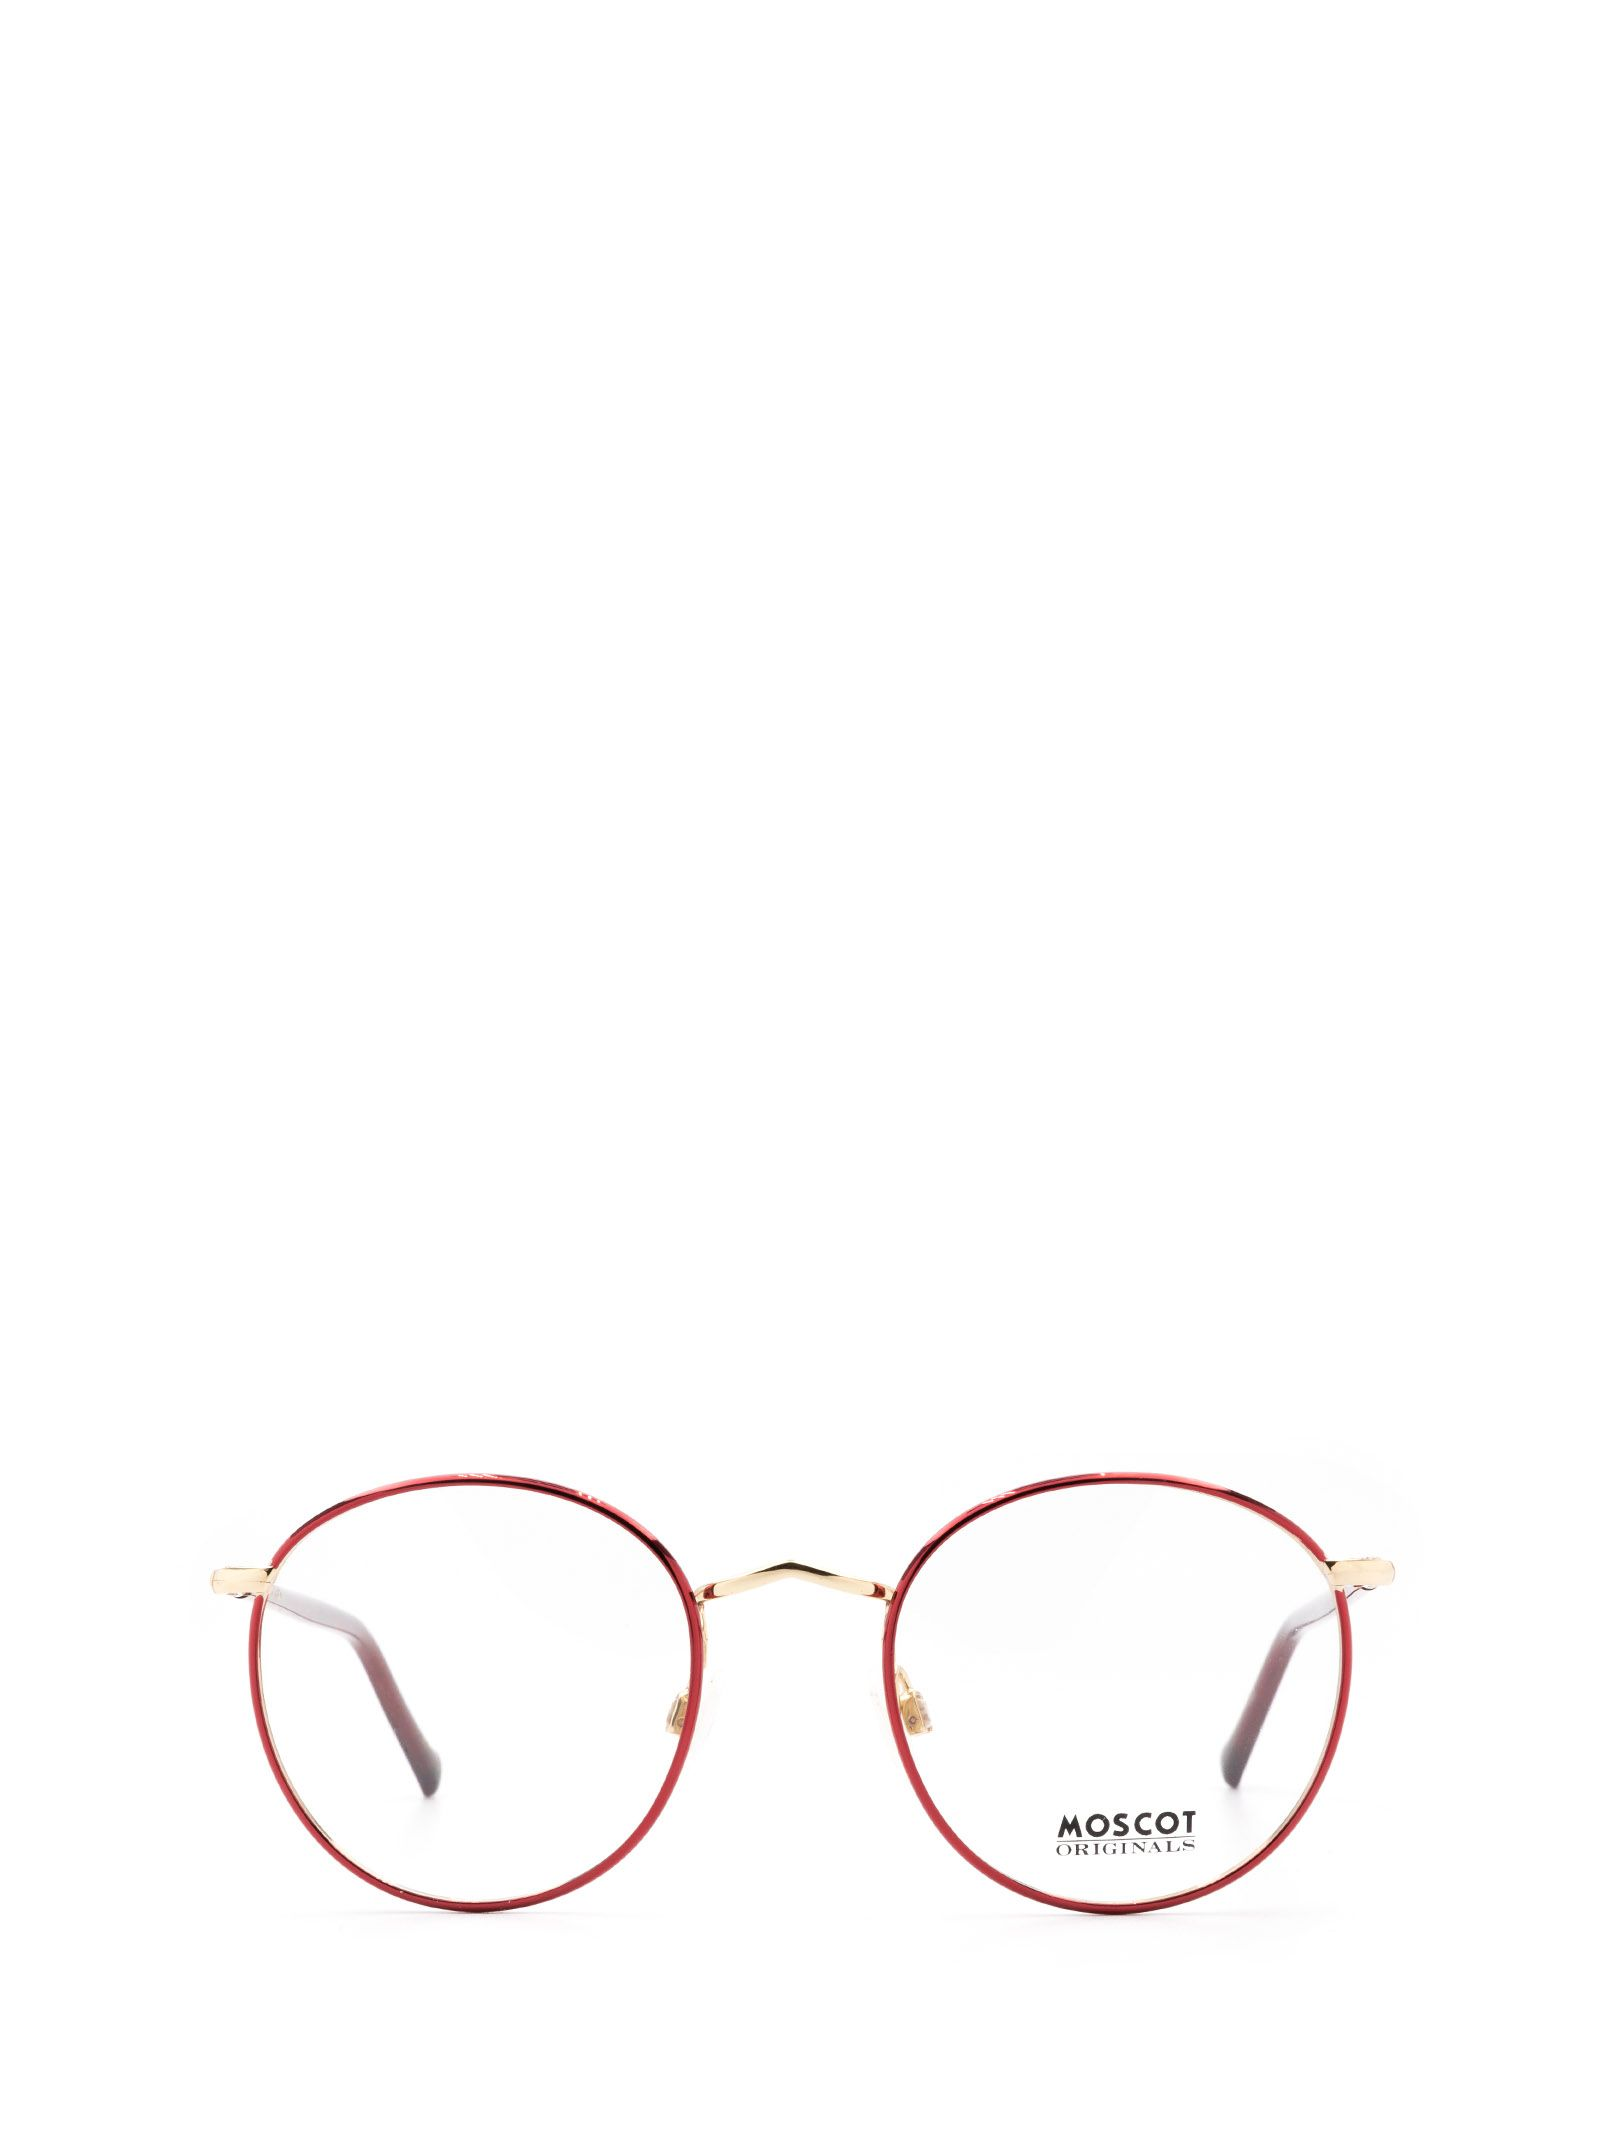 Moscot MOSCOT WOMEN'S RED METAL GLASSES